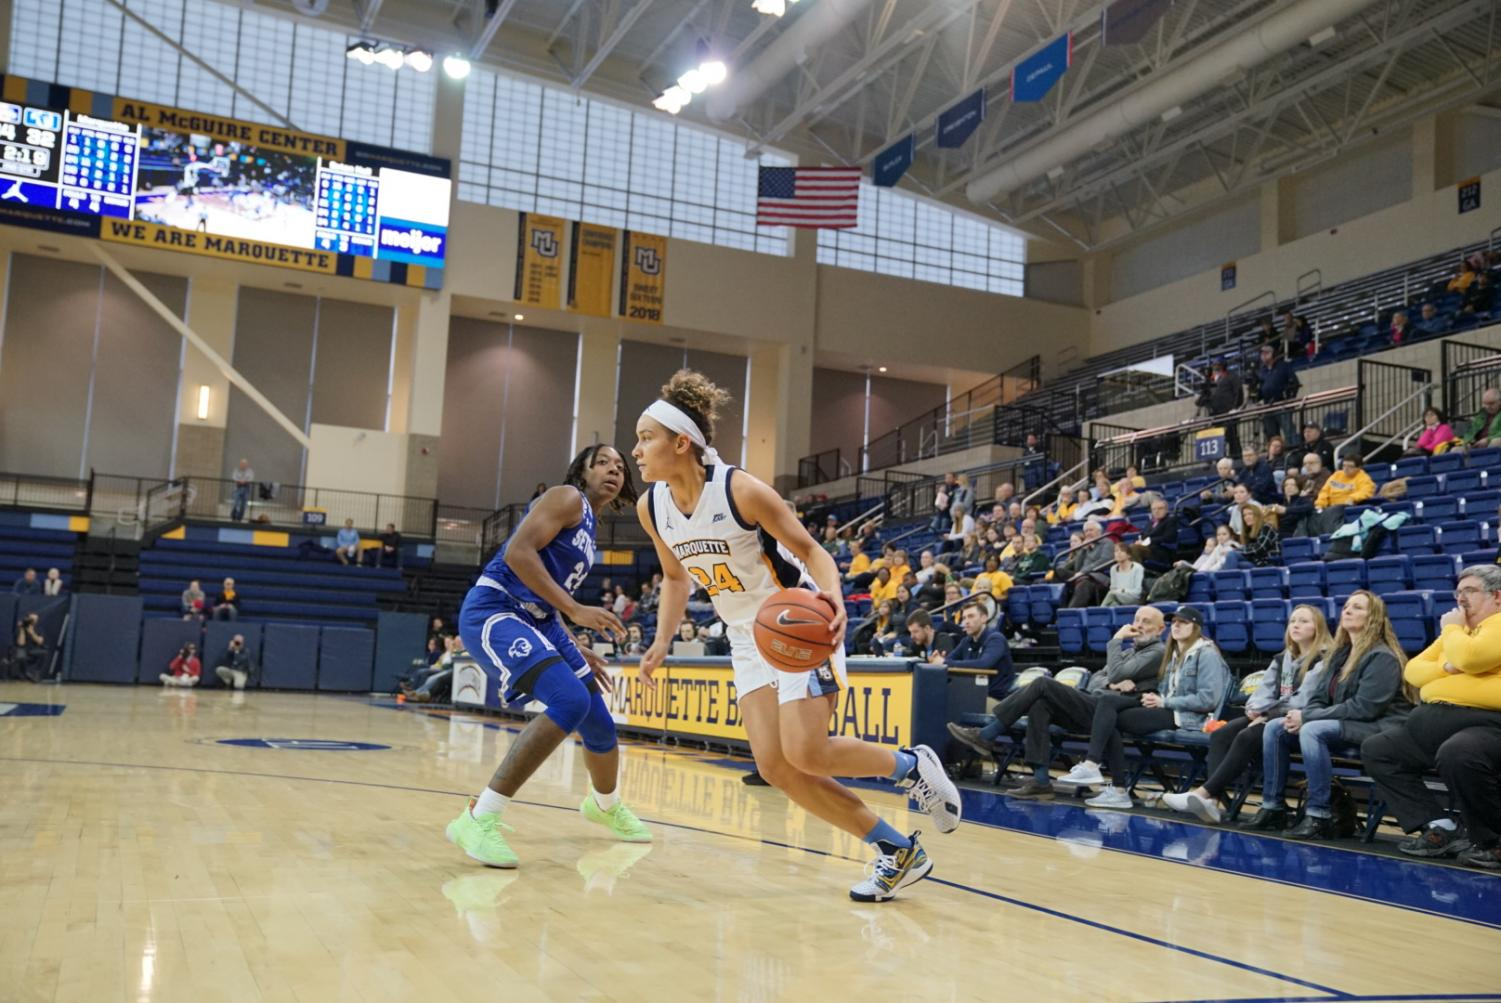 Selena Lott (24) dribbles the basketball in the Golden Eagles' 81-60 victory over the Pirates Sunday afternoon. She had 19 points.